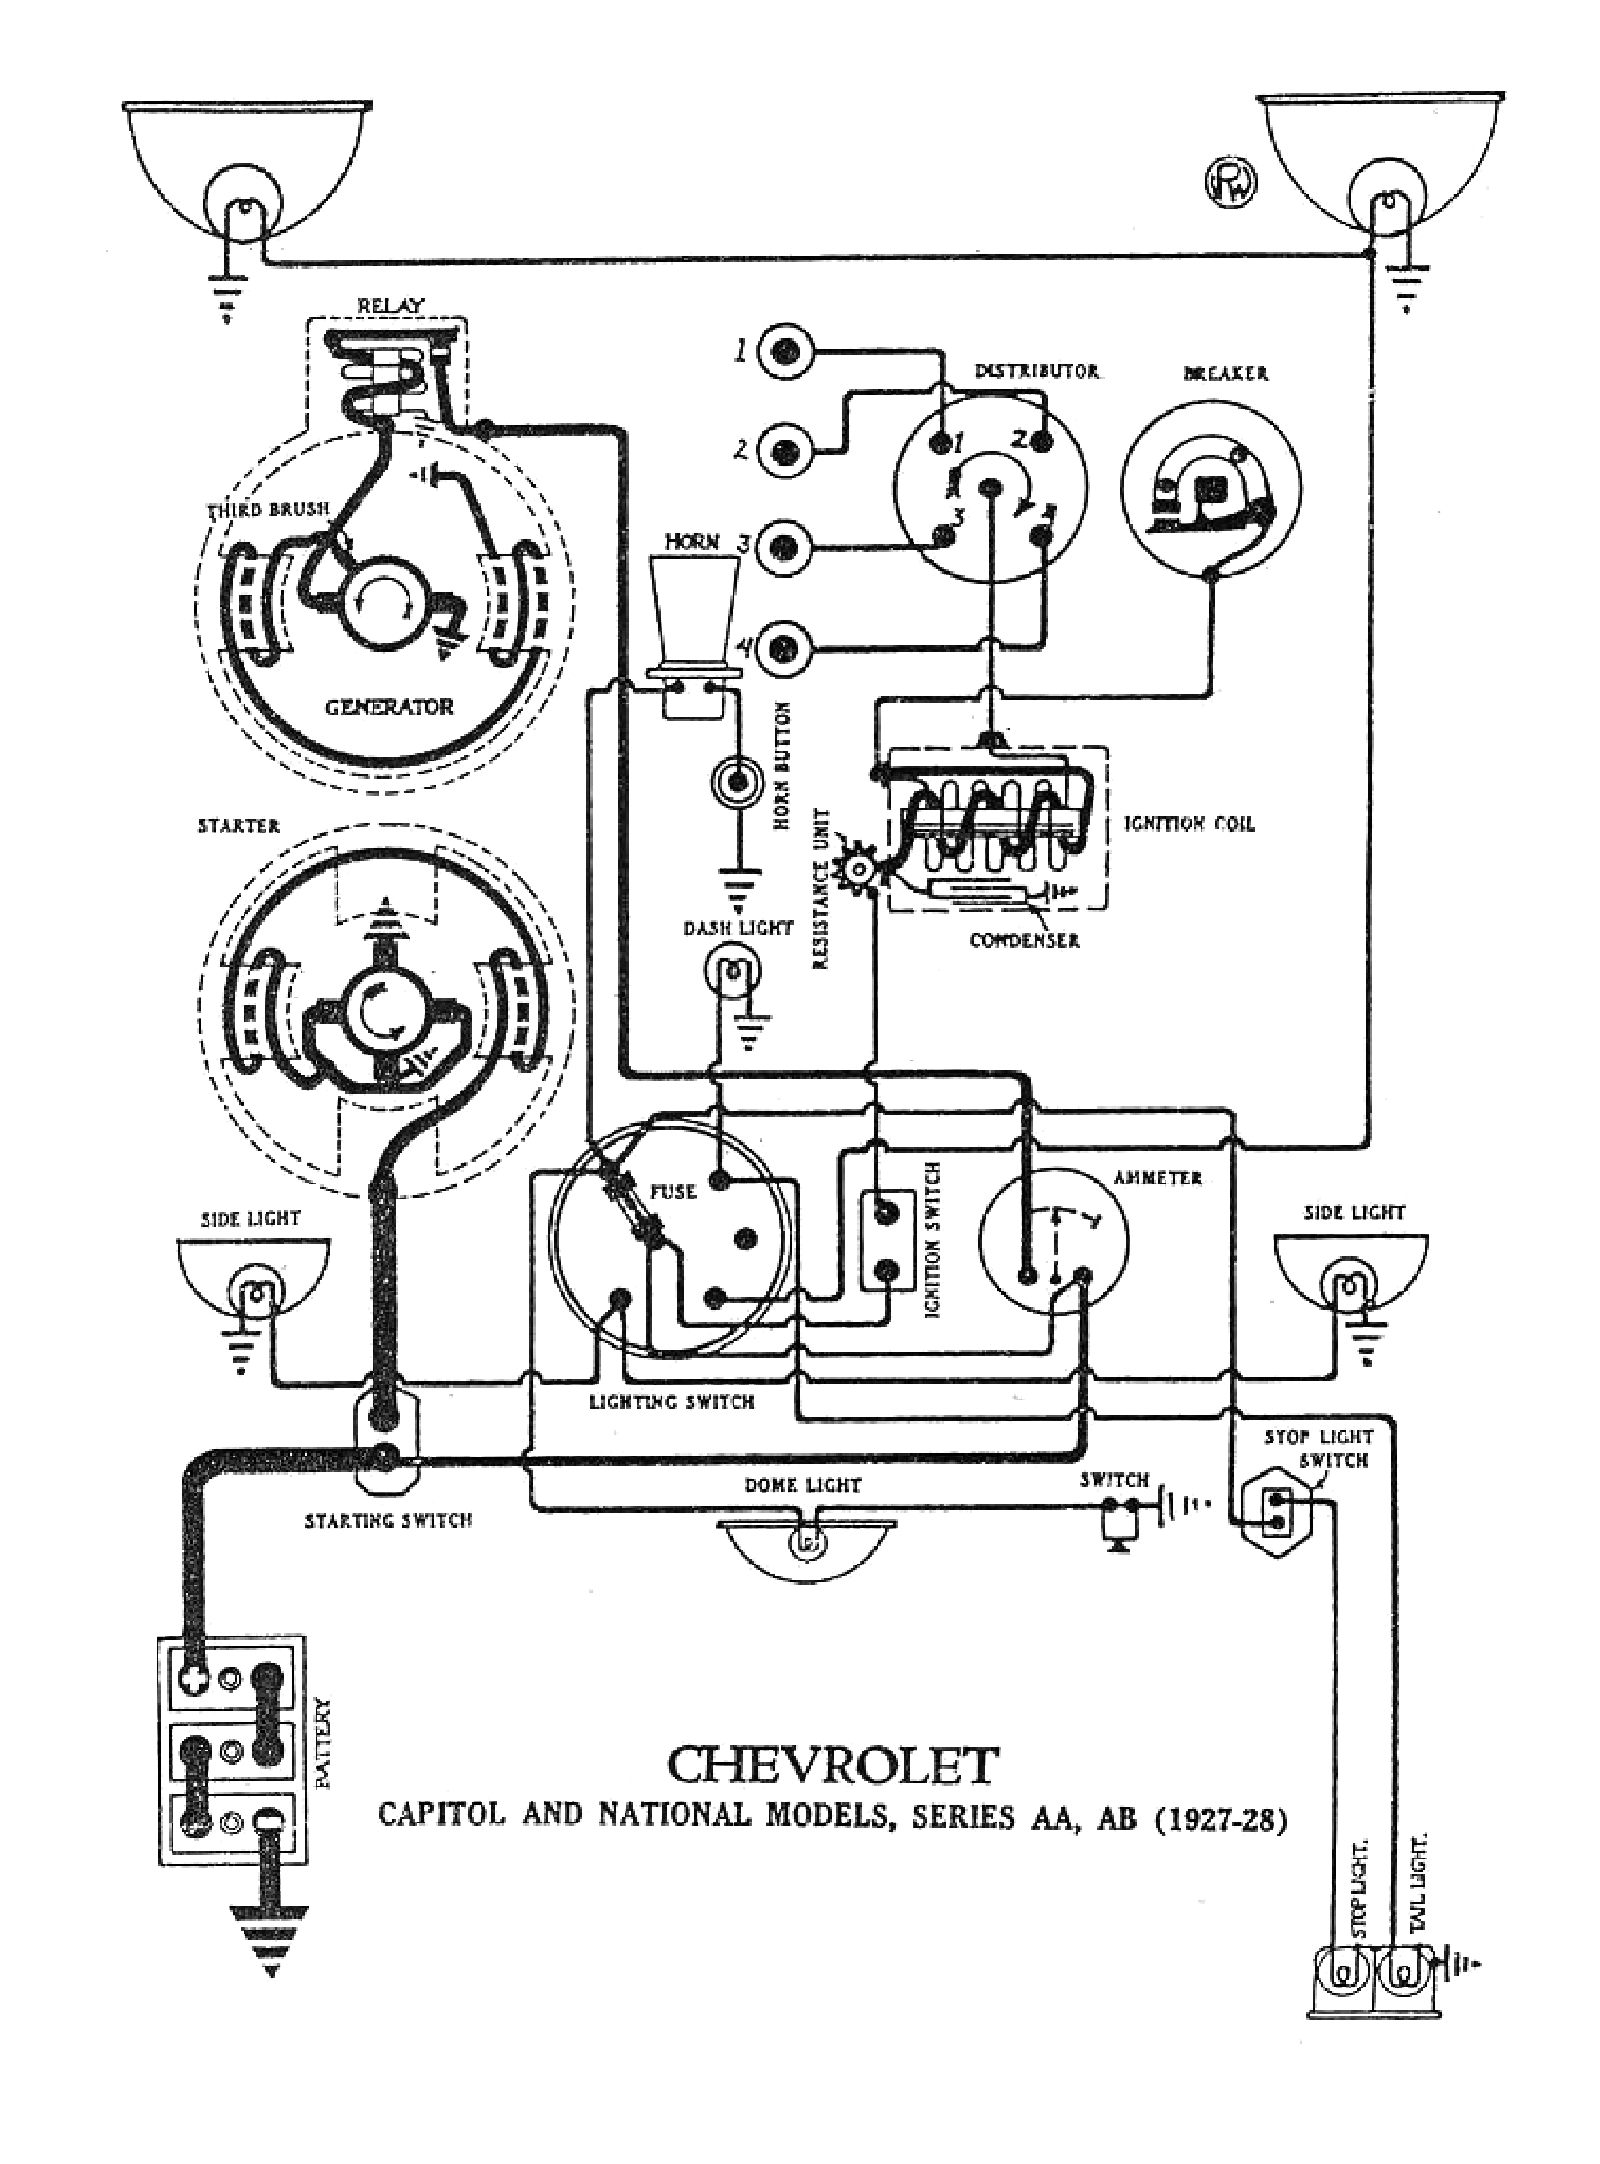 chevy 350 ignition coil wiring diagram in addition 55 chevy ignition rh autonomia co